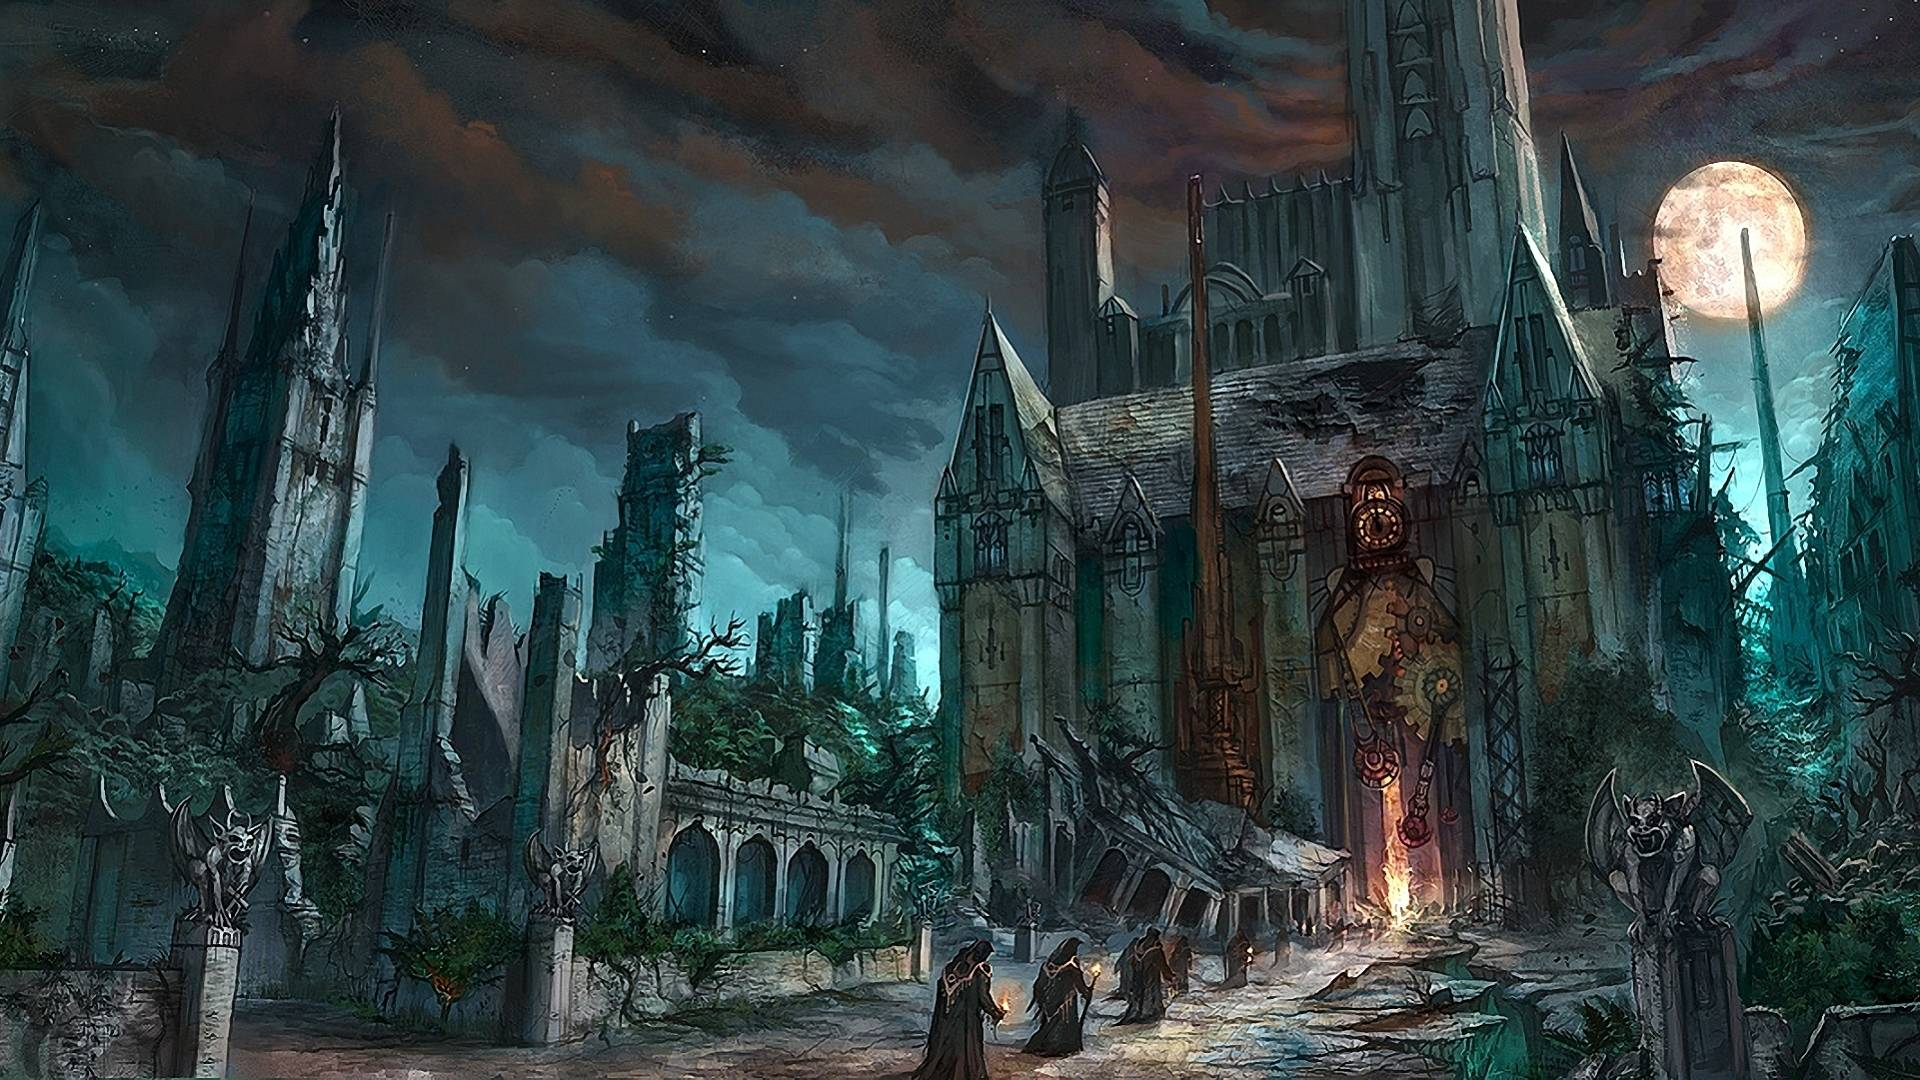 Dark Fantasy Horror Gothic Art Monk Cathedral Church Wallpaper